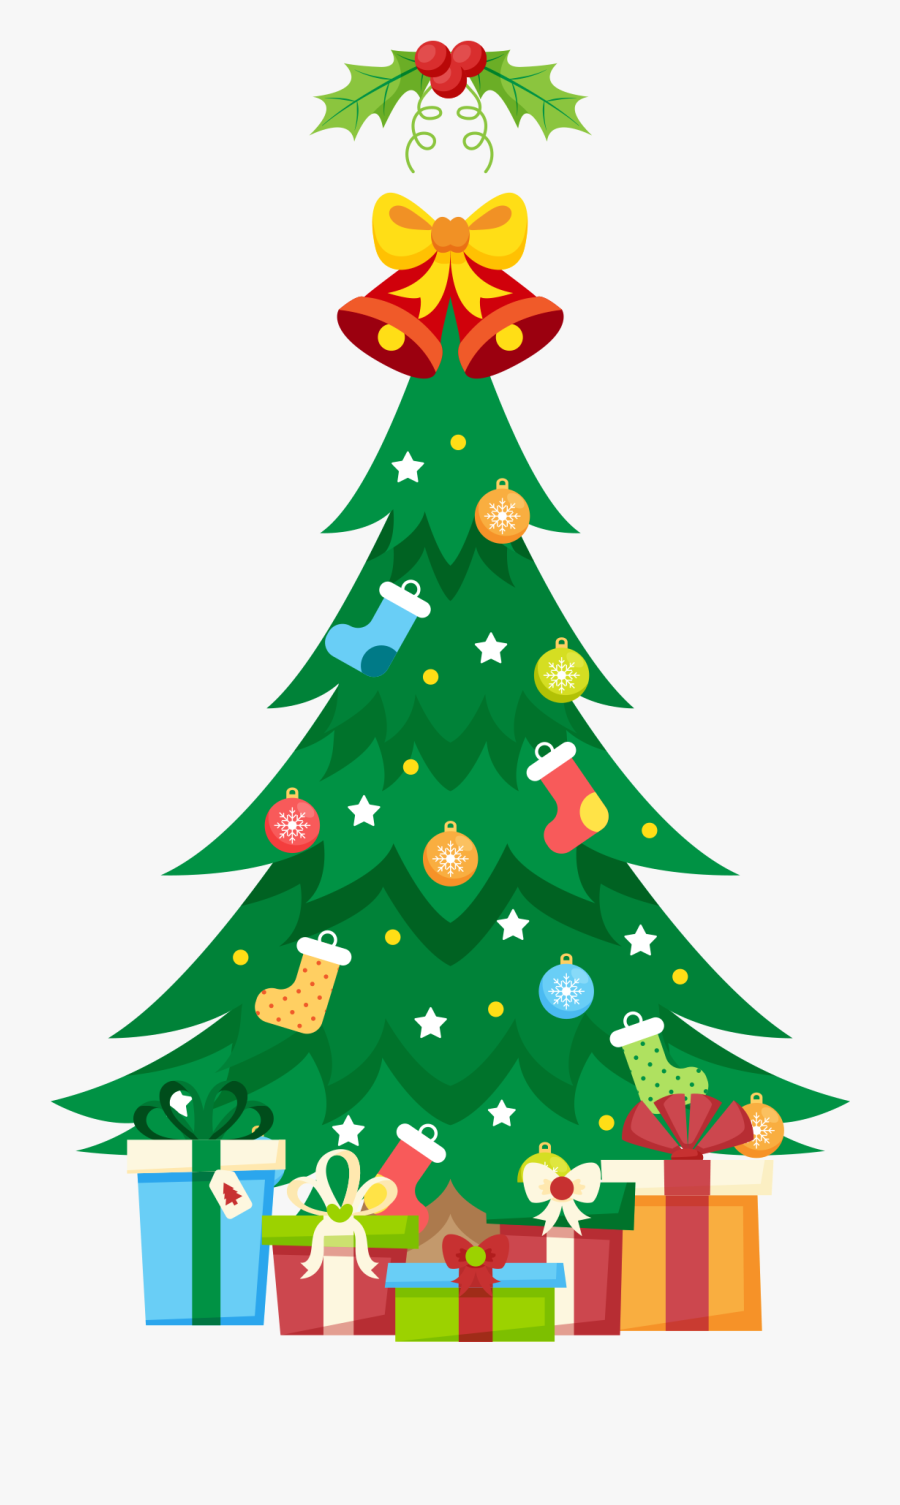 Traditional Christmas Tree With Gifts Clipart Png Image - Christmas Tree, Transparent Clipart